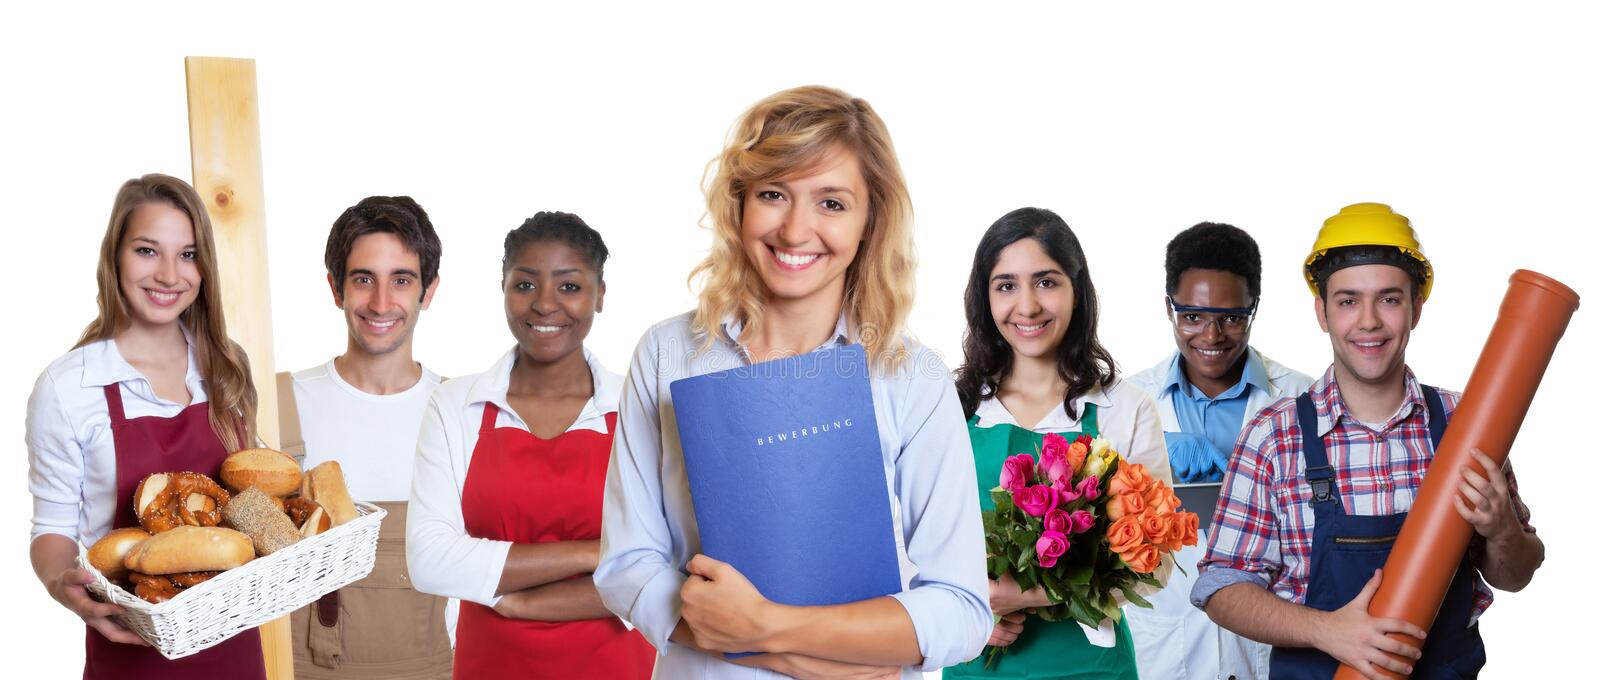 German female business trainee with group of other international apprentices stock image